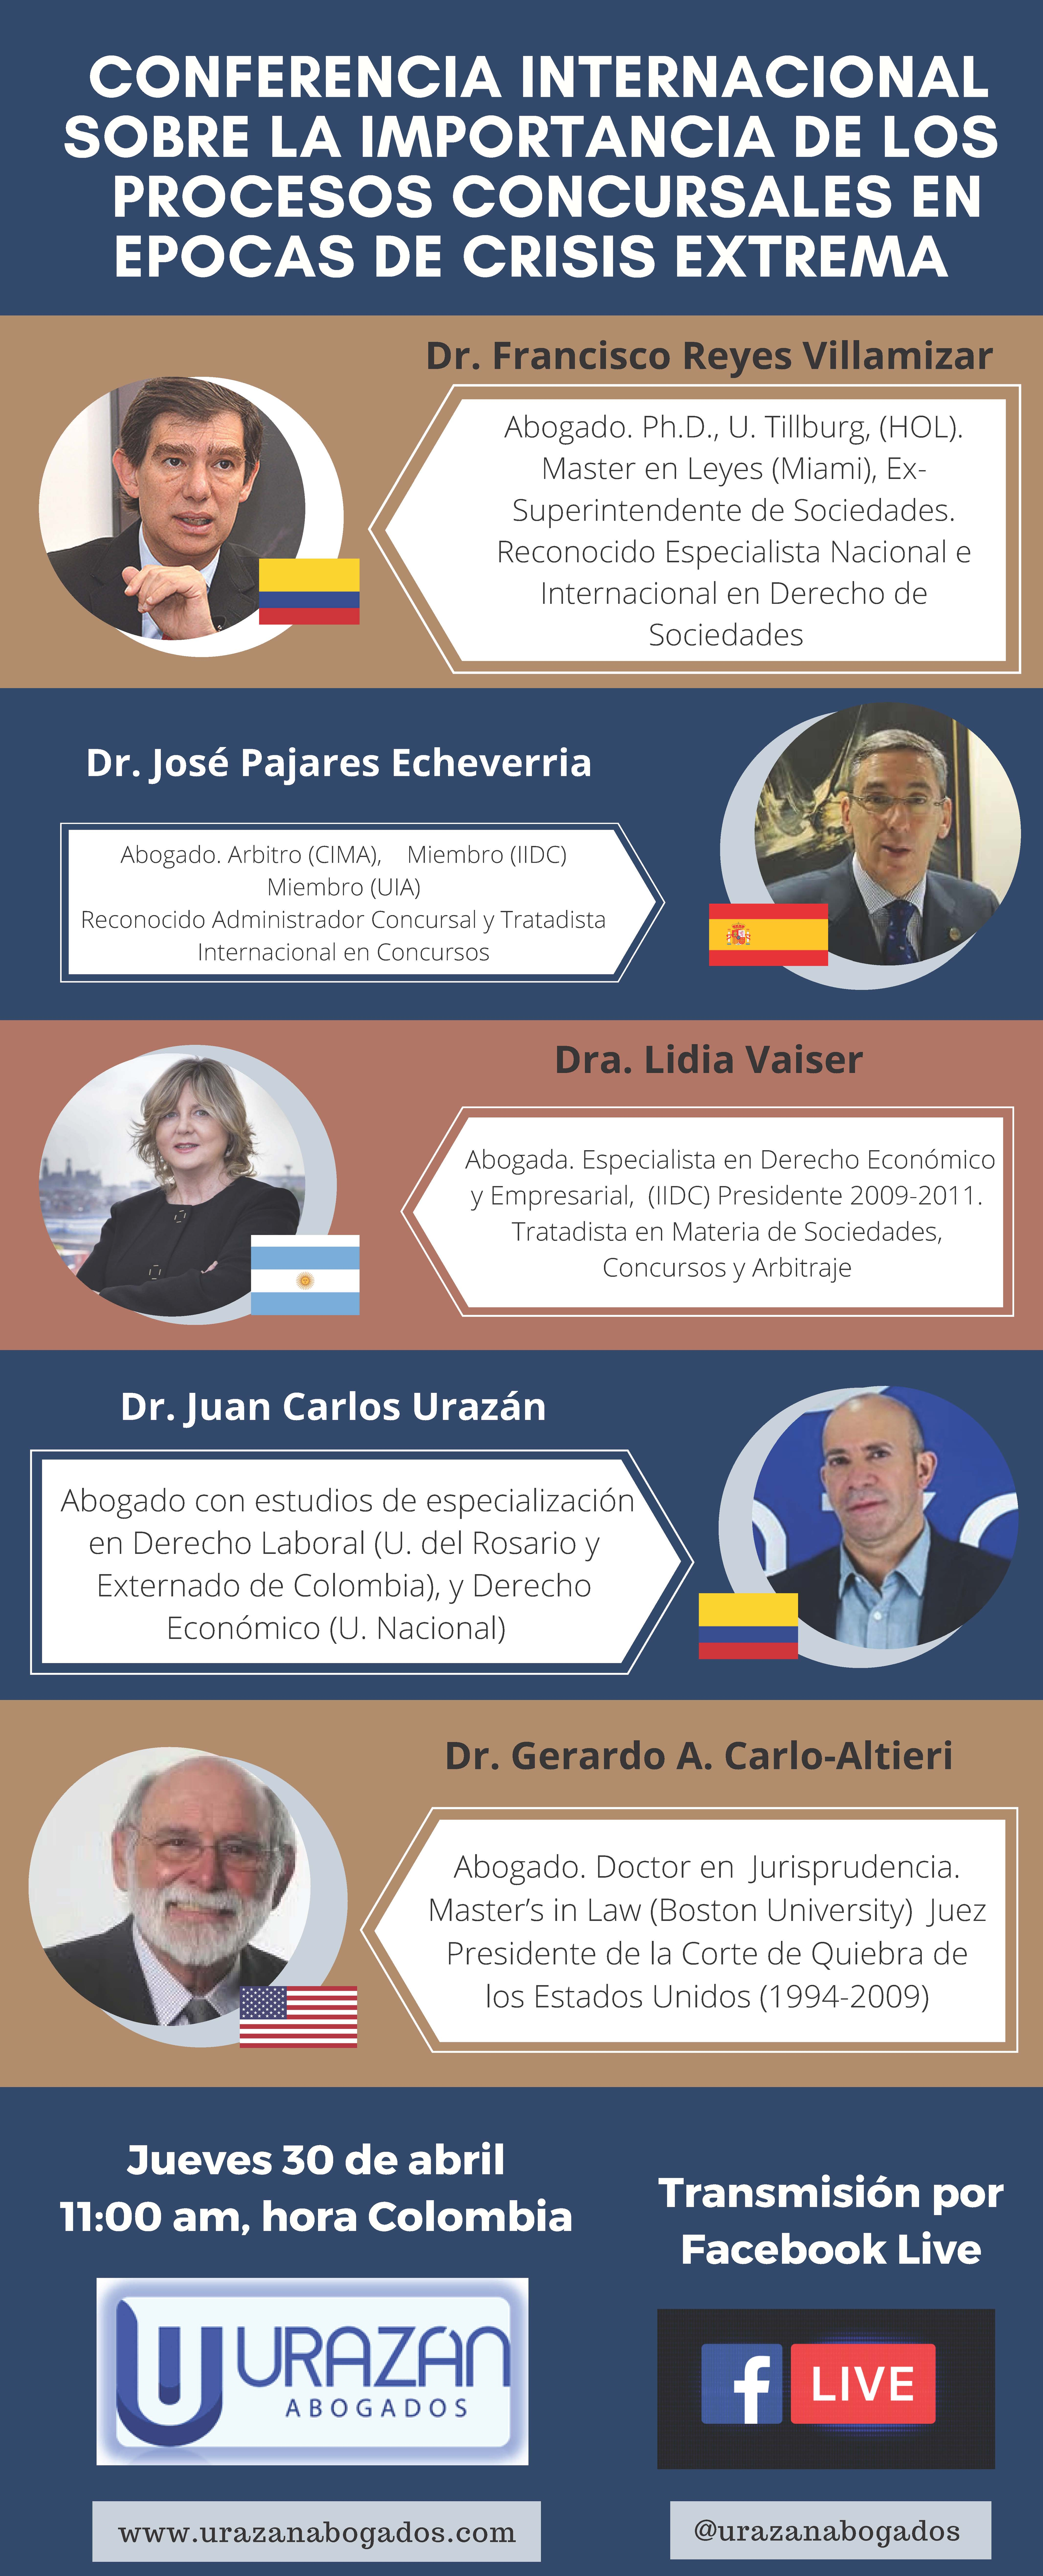 COLOMBIAN INTERNATIONAL CONFERENCE